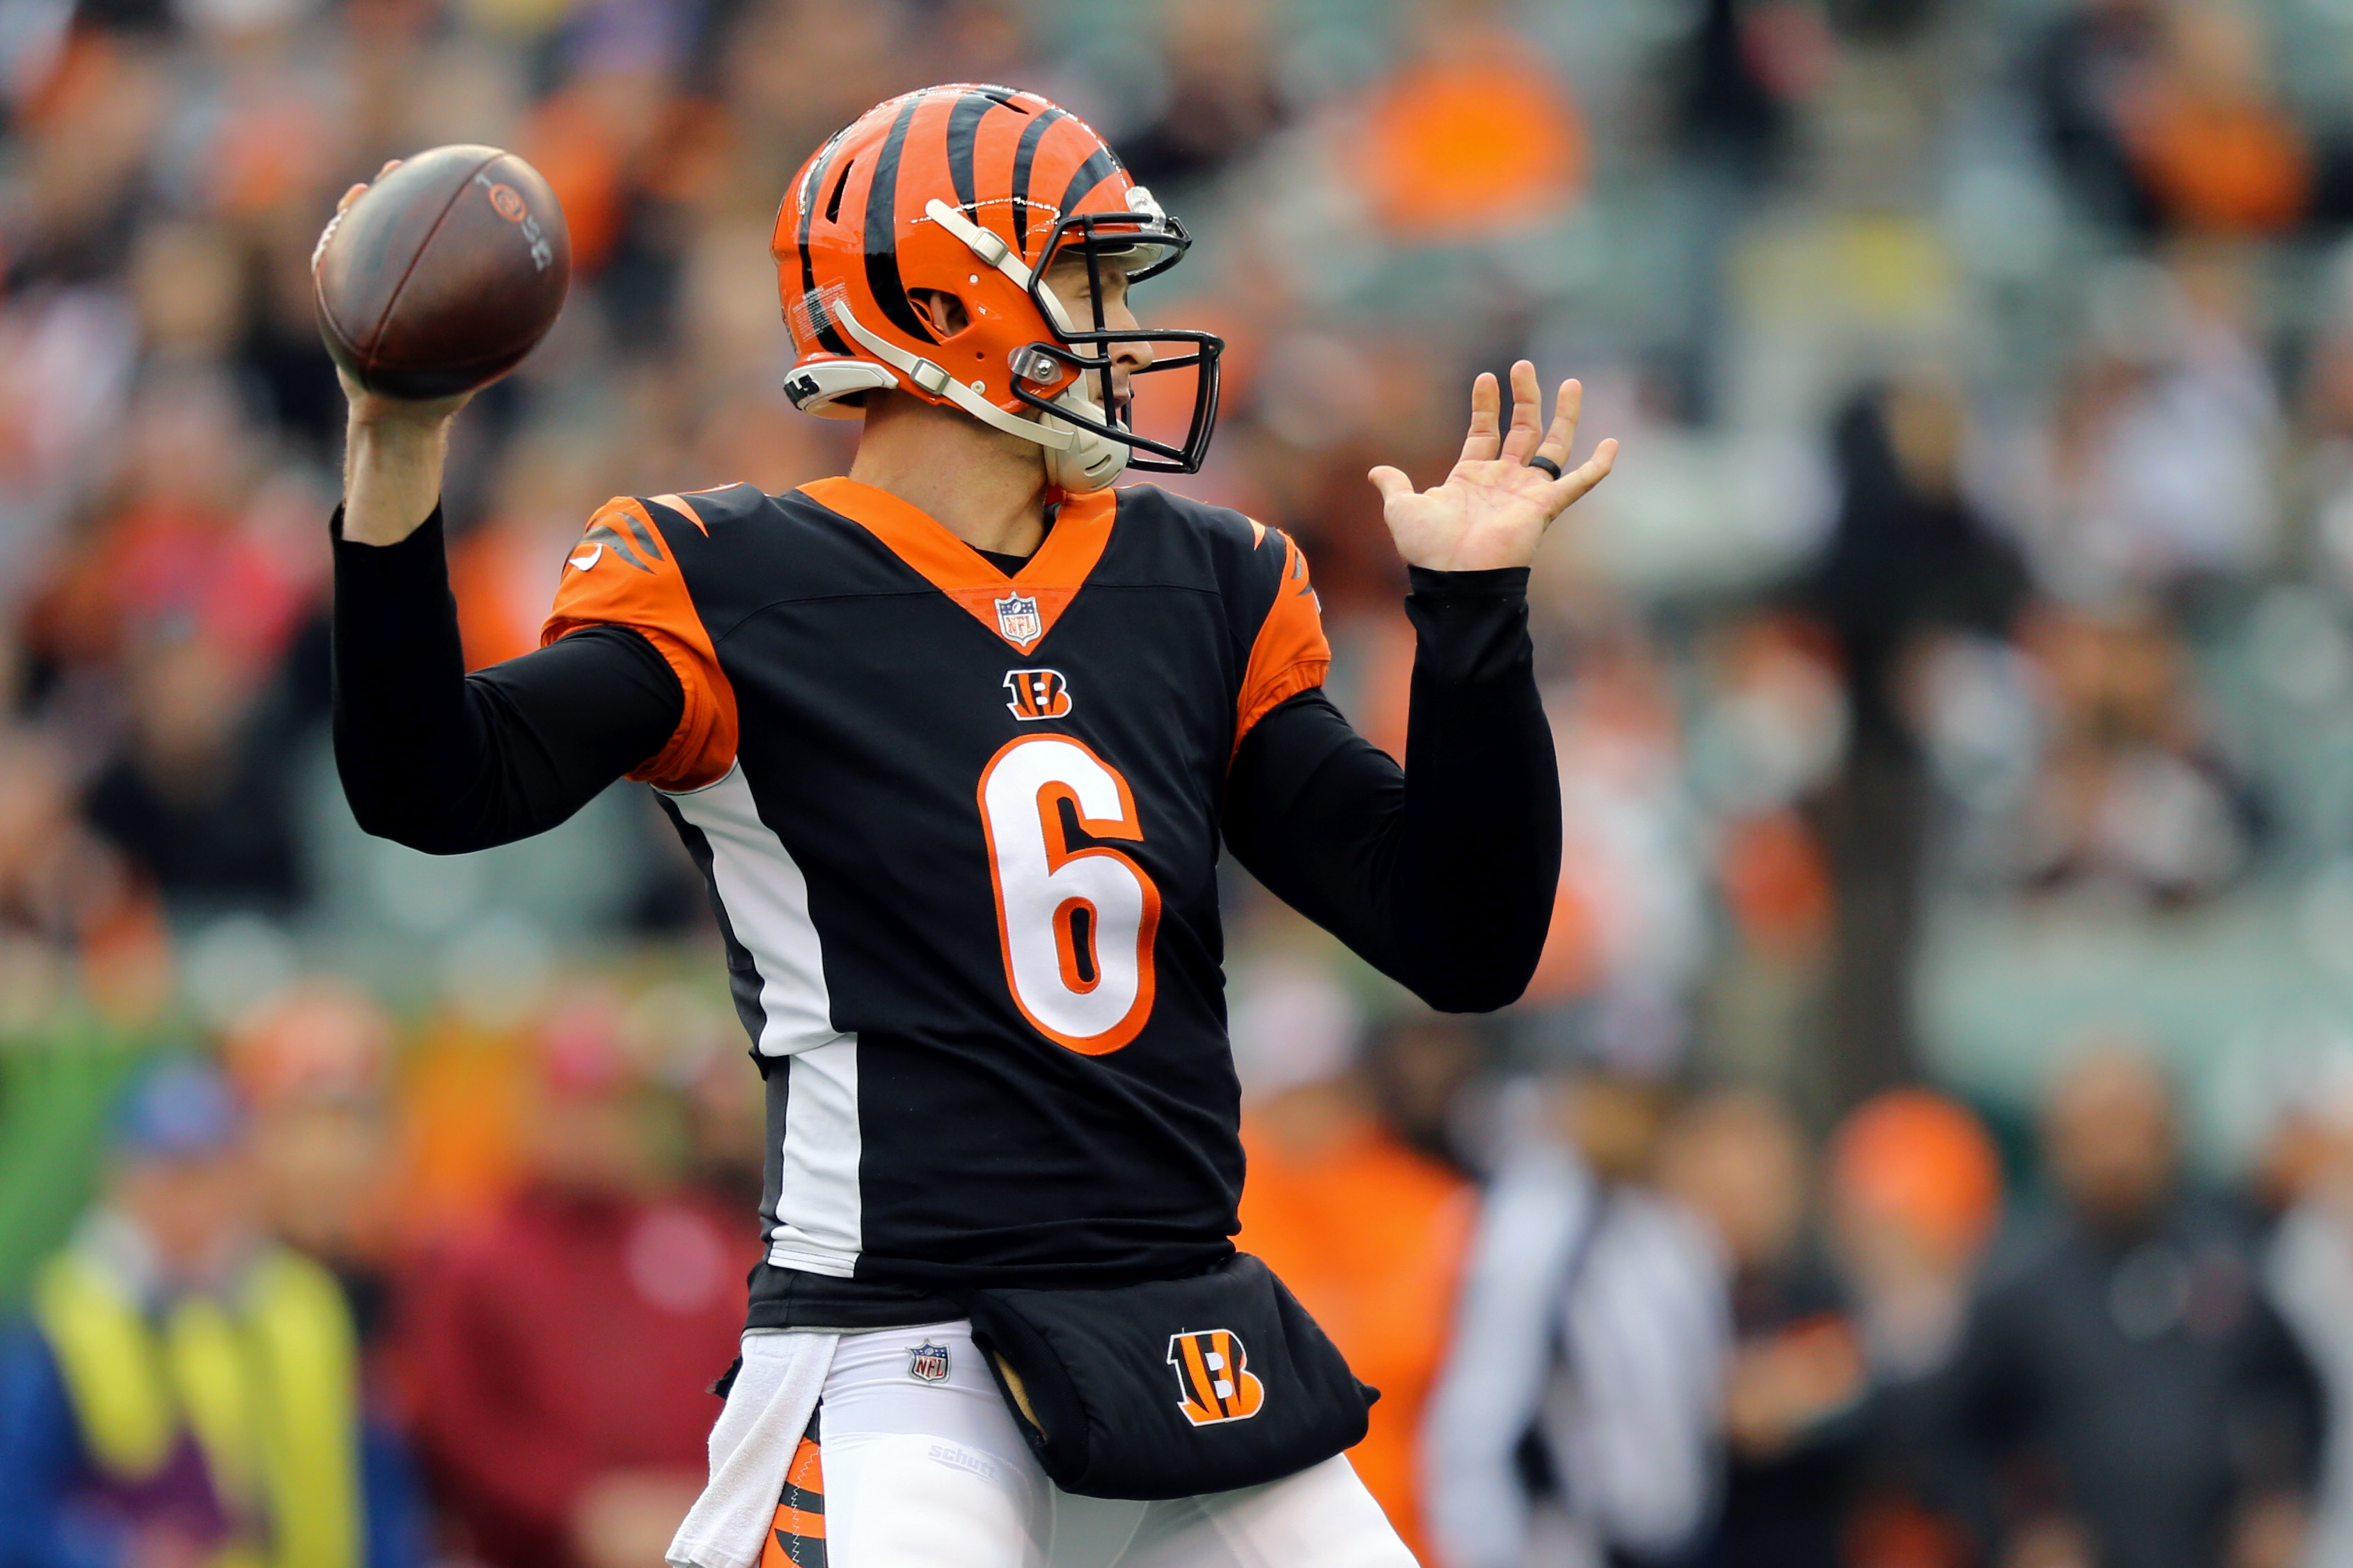 timeless design 9b08f 1b1e8 What happens if Jeff Driskel succeeds in the Bengals' final ...